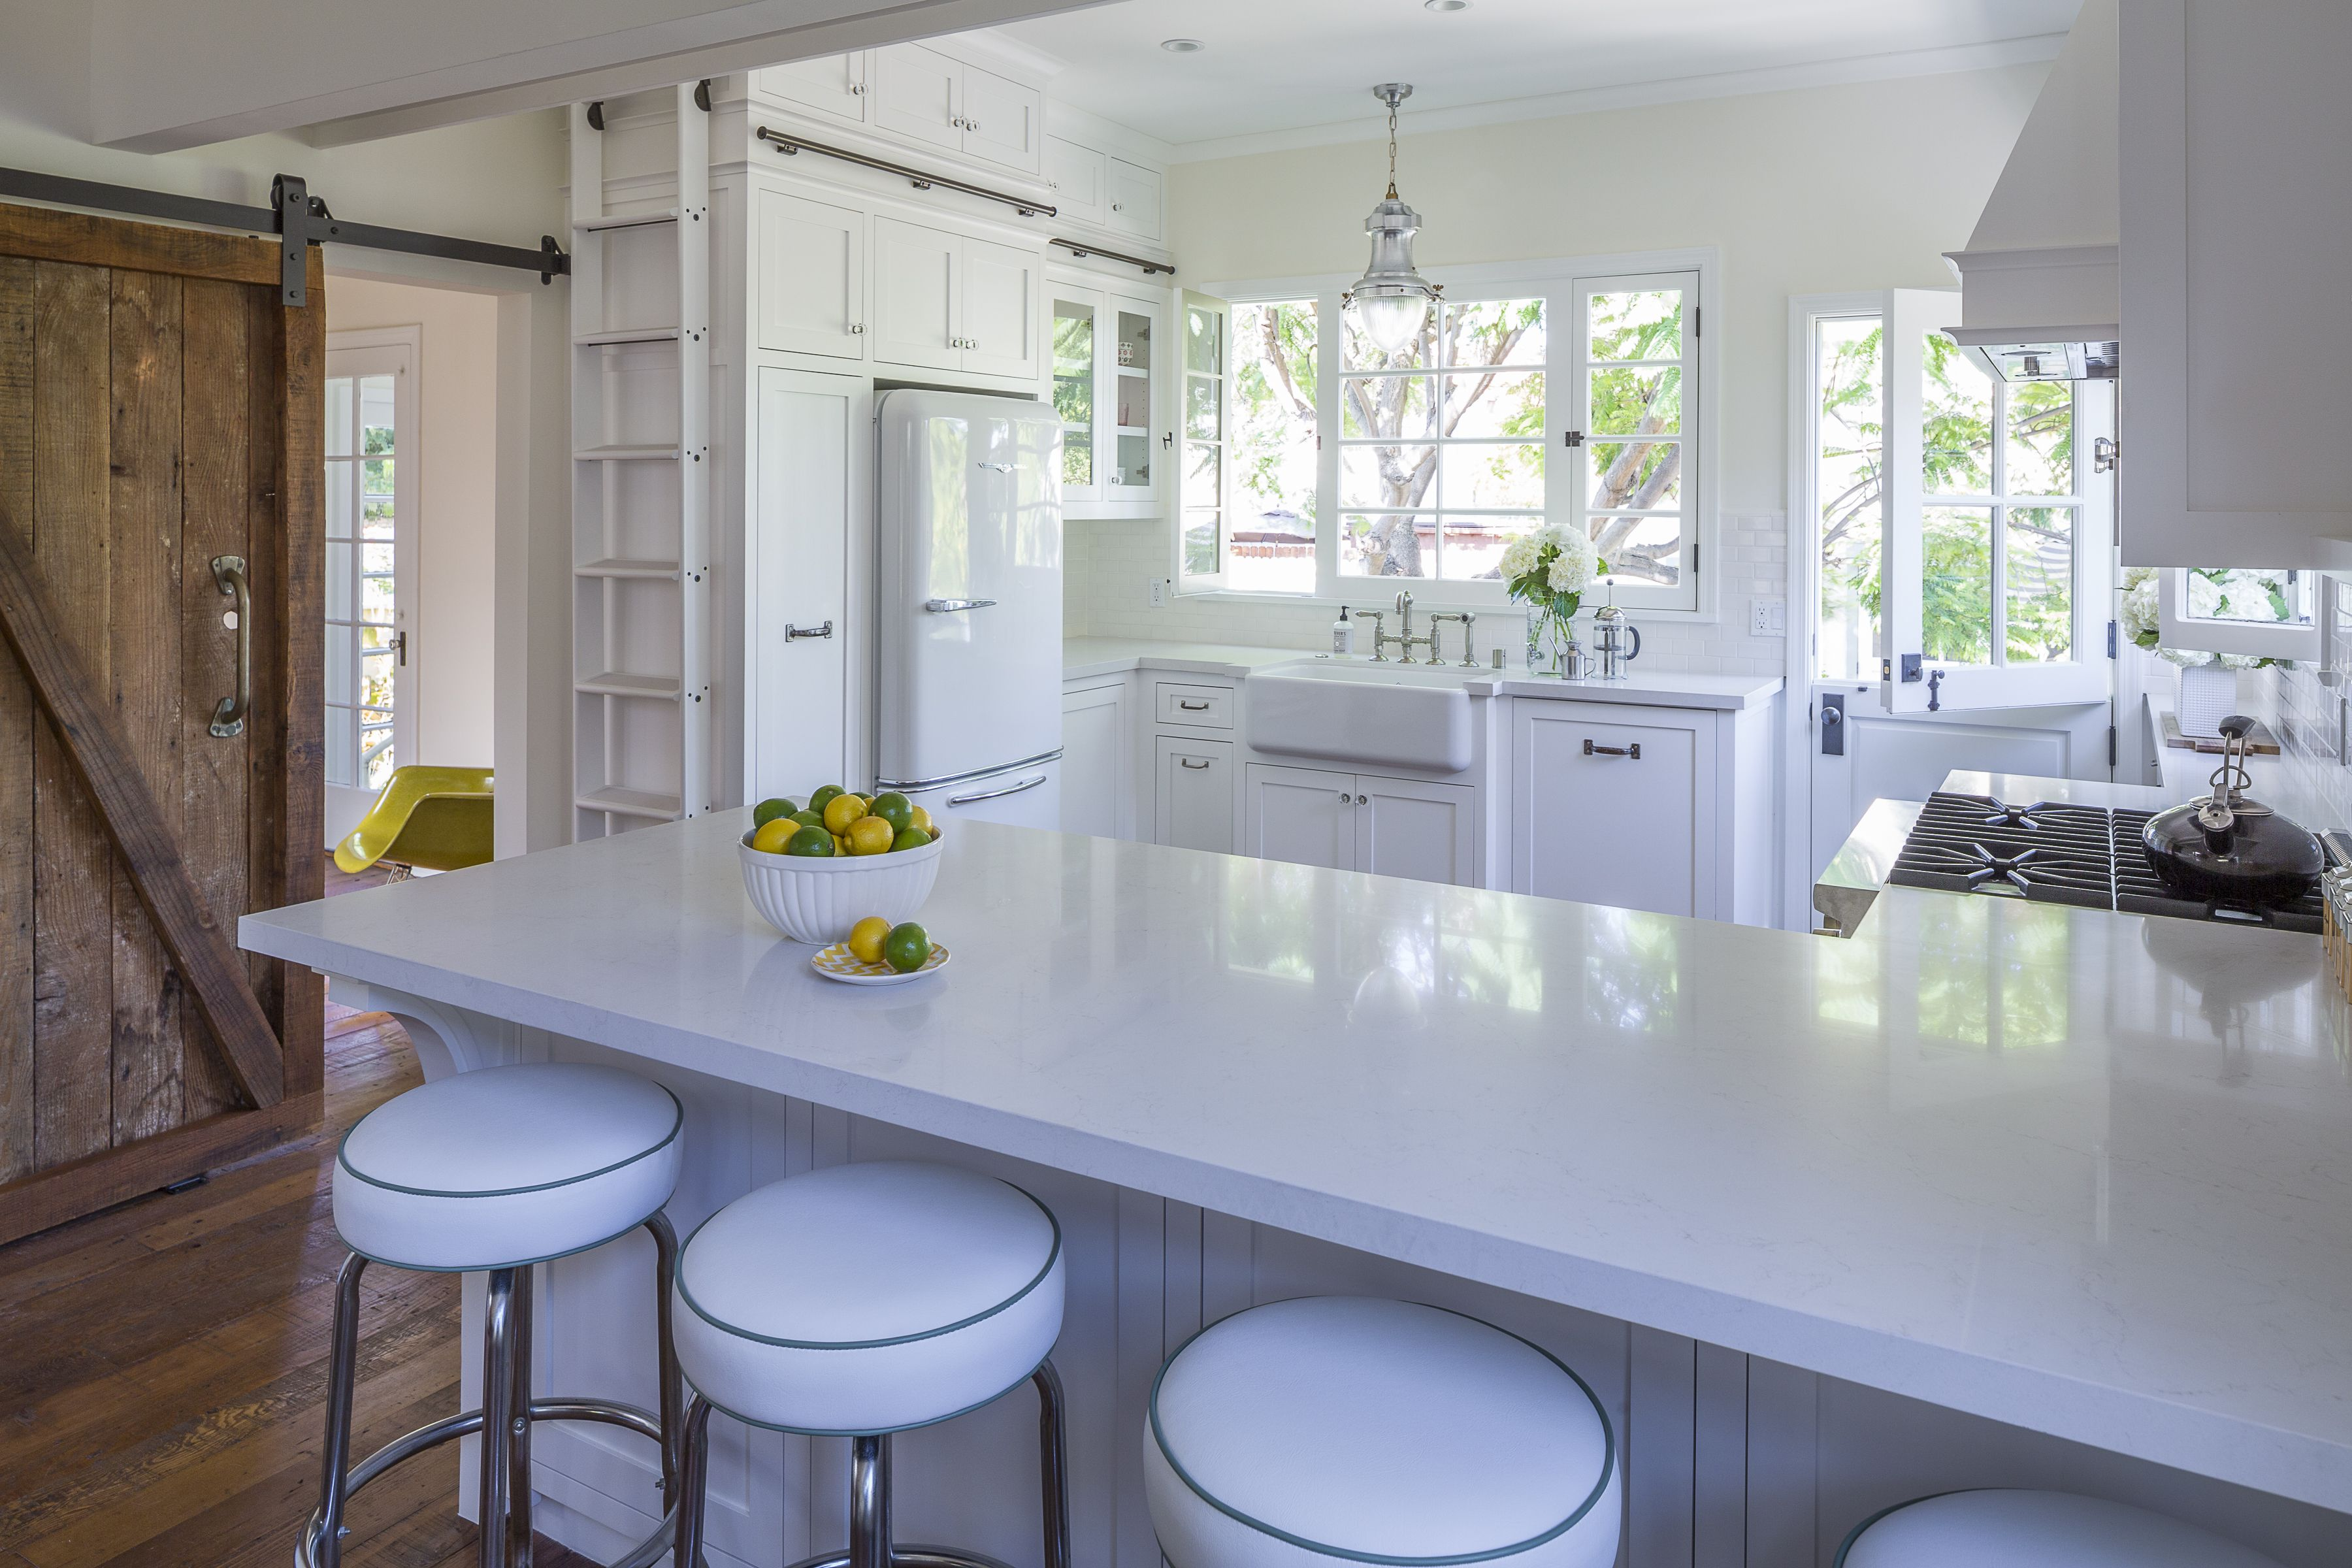 4ptdc.com #5141 Frosty Carrina Classico ™ | Caesarstone Kitchens ...